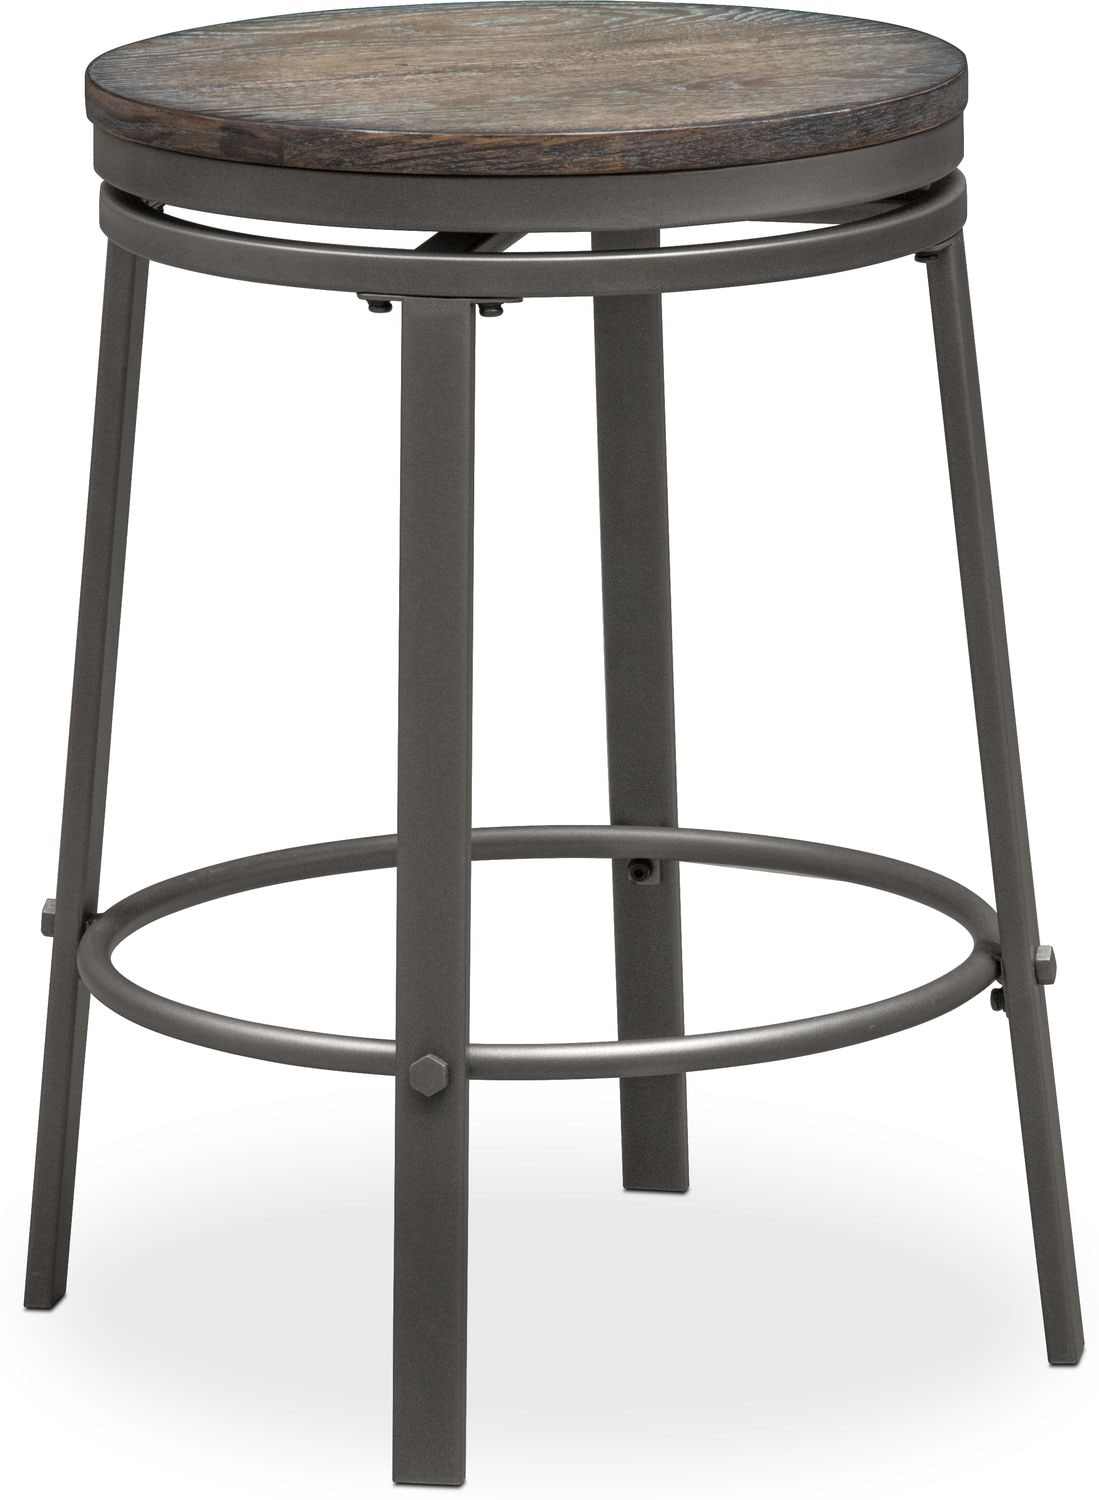 Dining Room Furniture - Stratton Counter-Height Stool